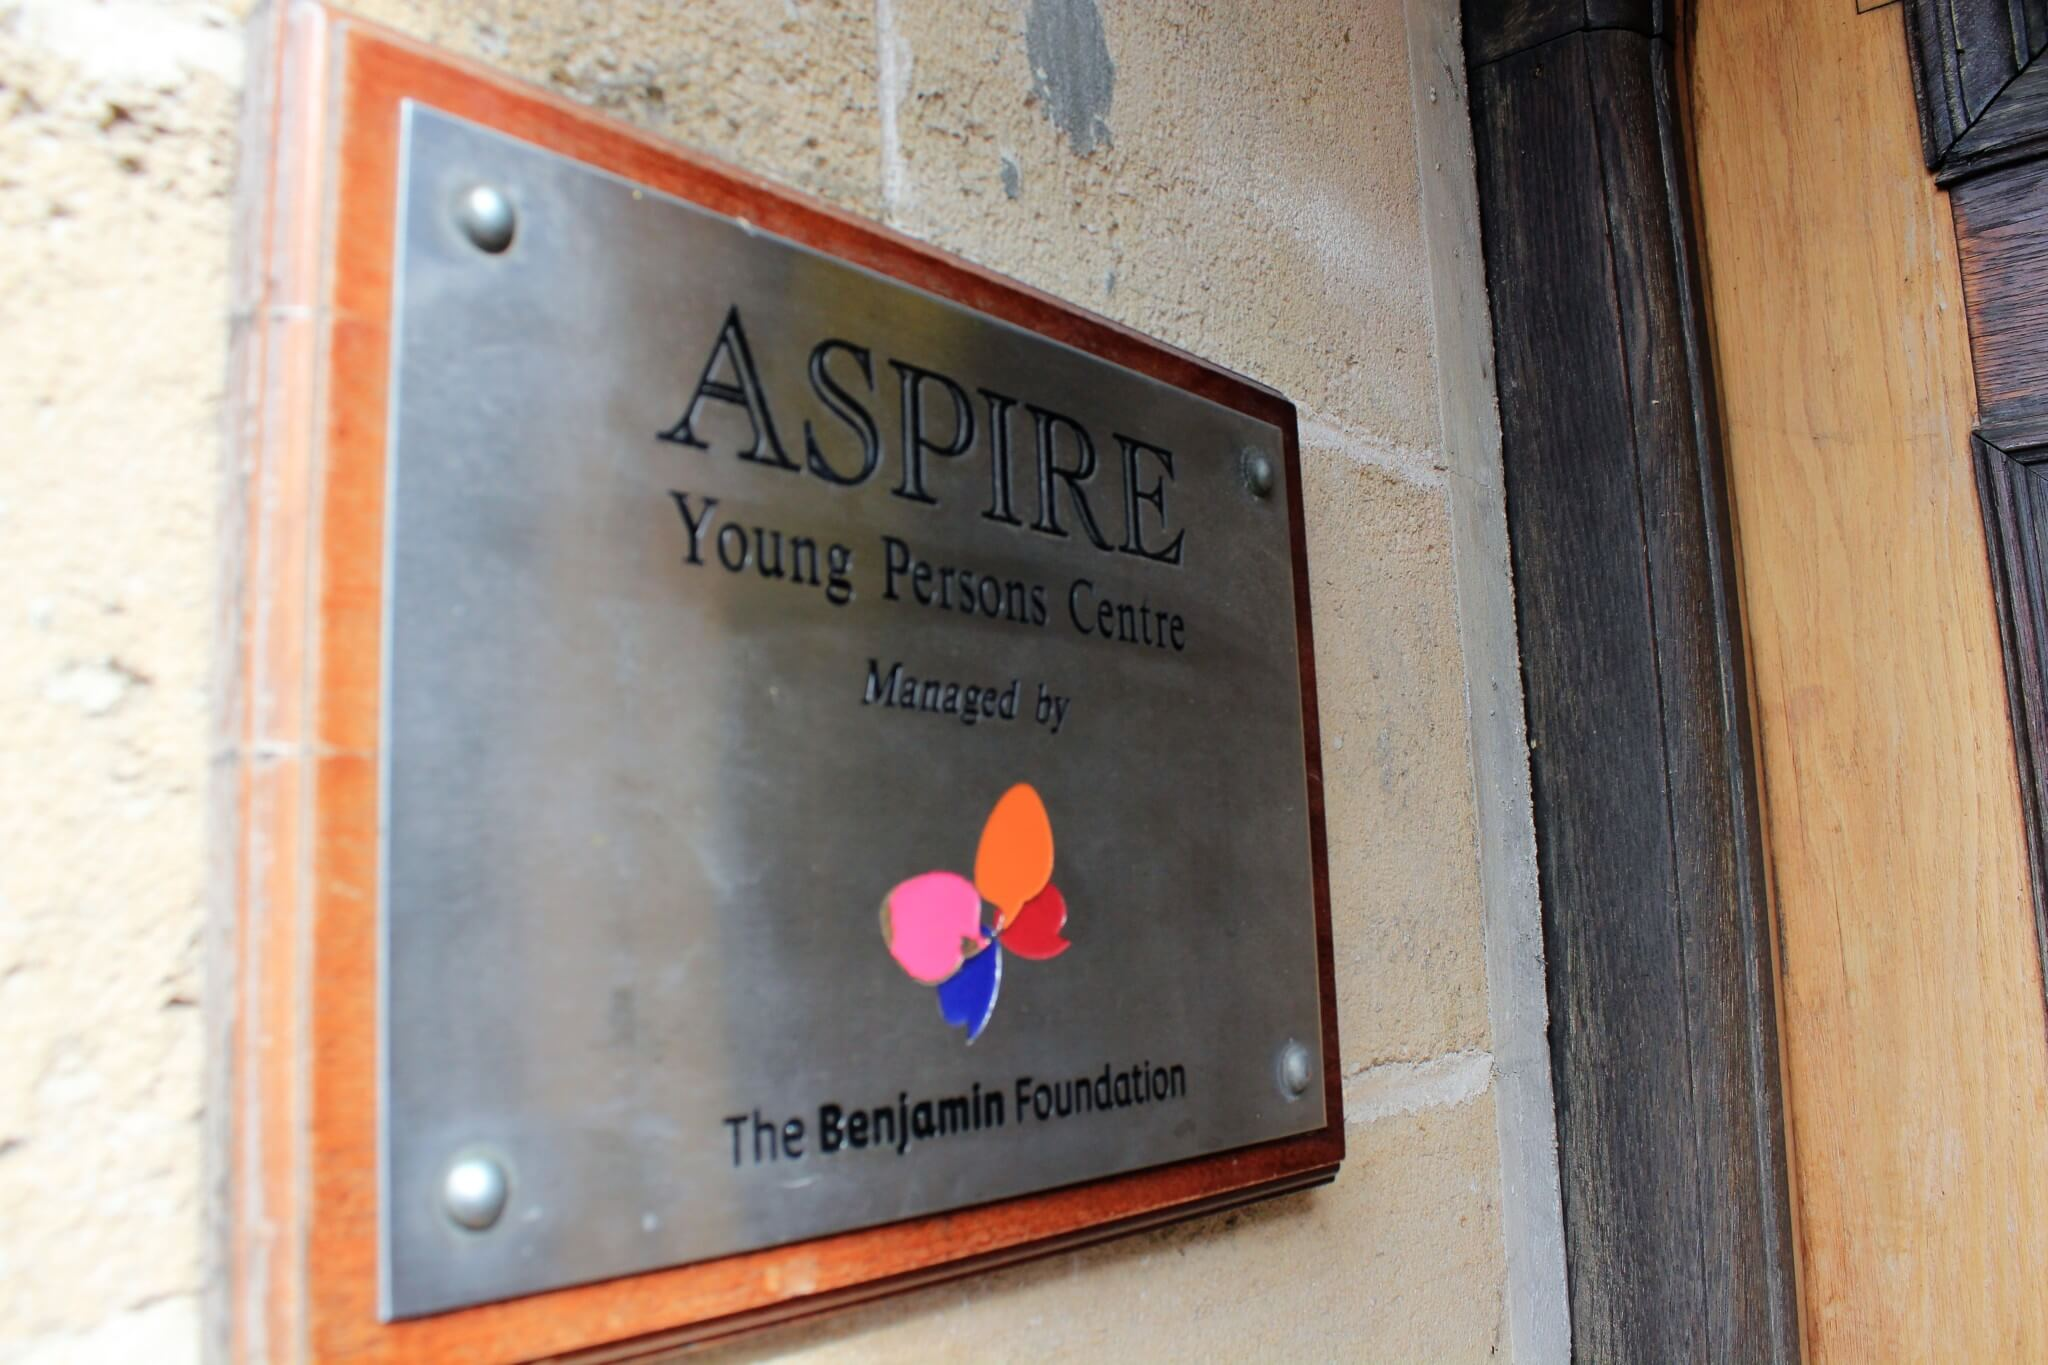 Aspire Young Person's Centre sign